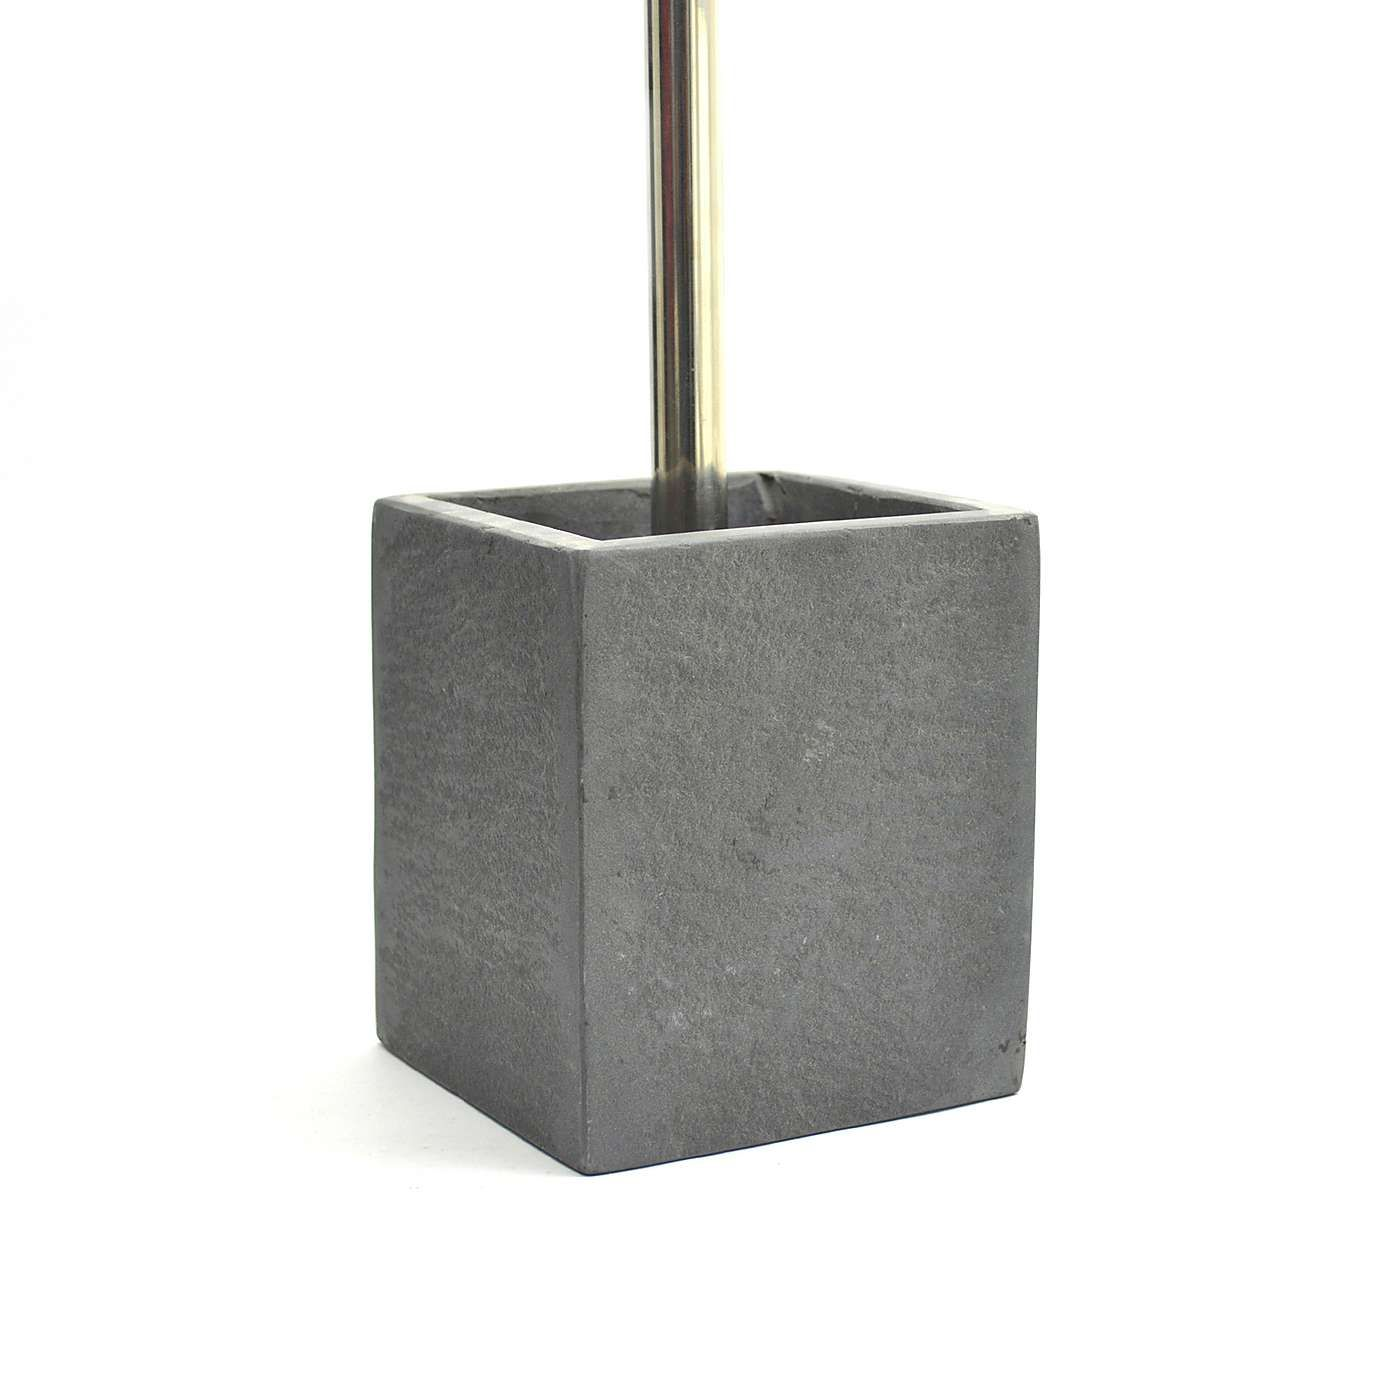 Henley Slate Toilet Brush Holder | Brush holders